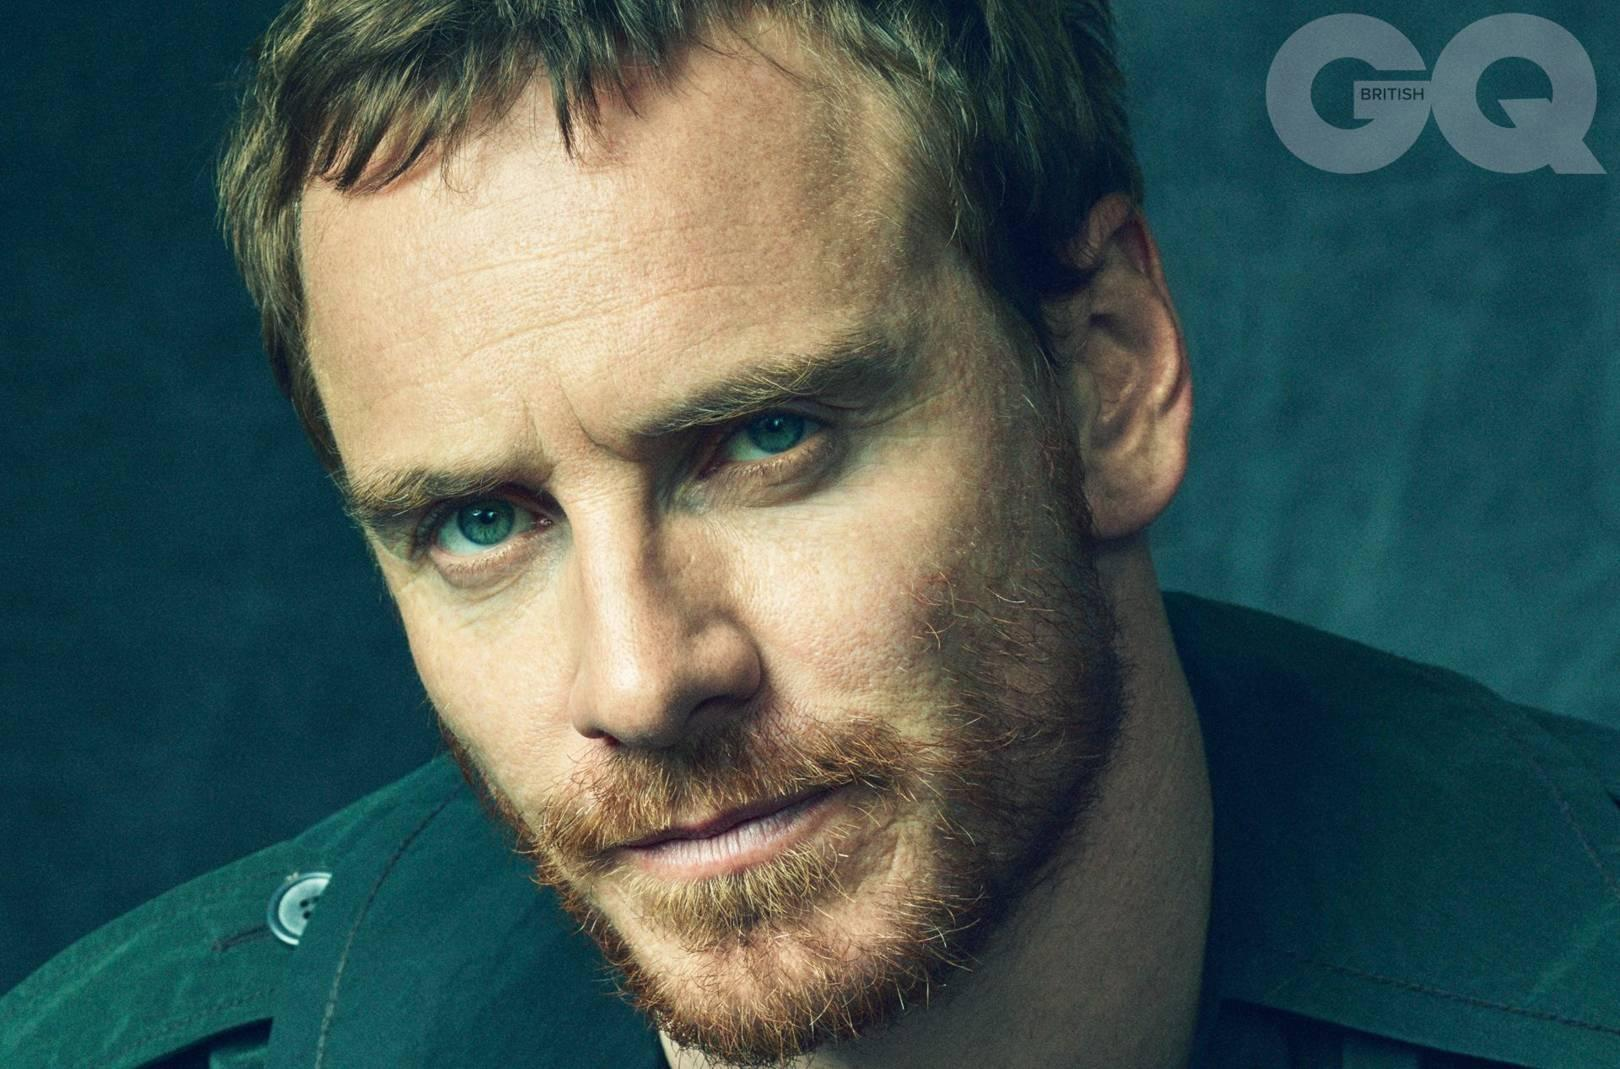 Michael Fassbender did not submit a scholarship essay but looks like a participant.